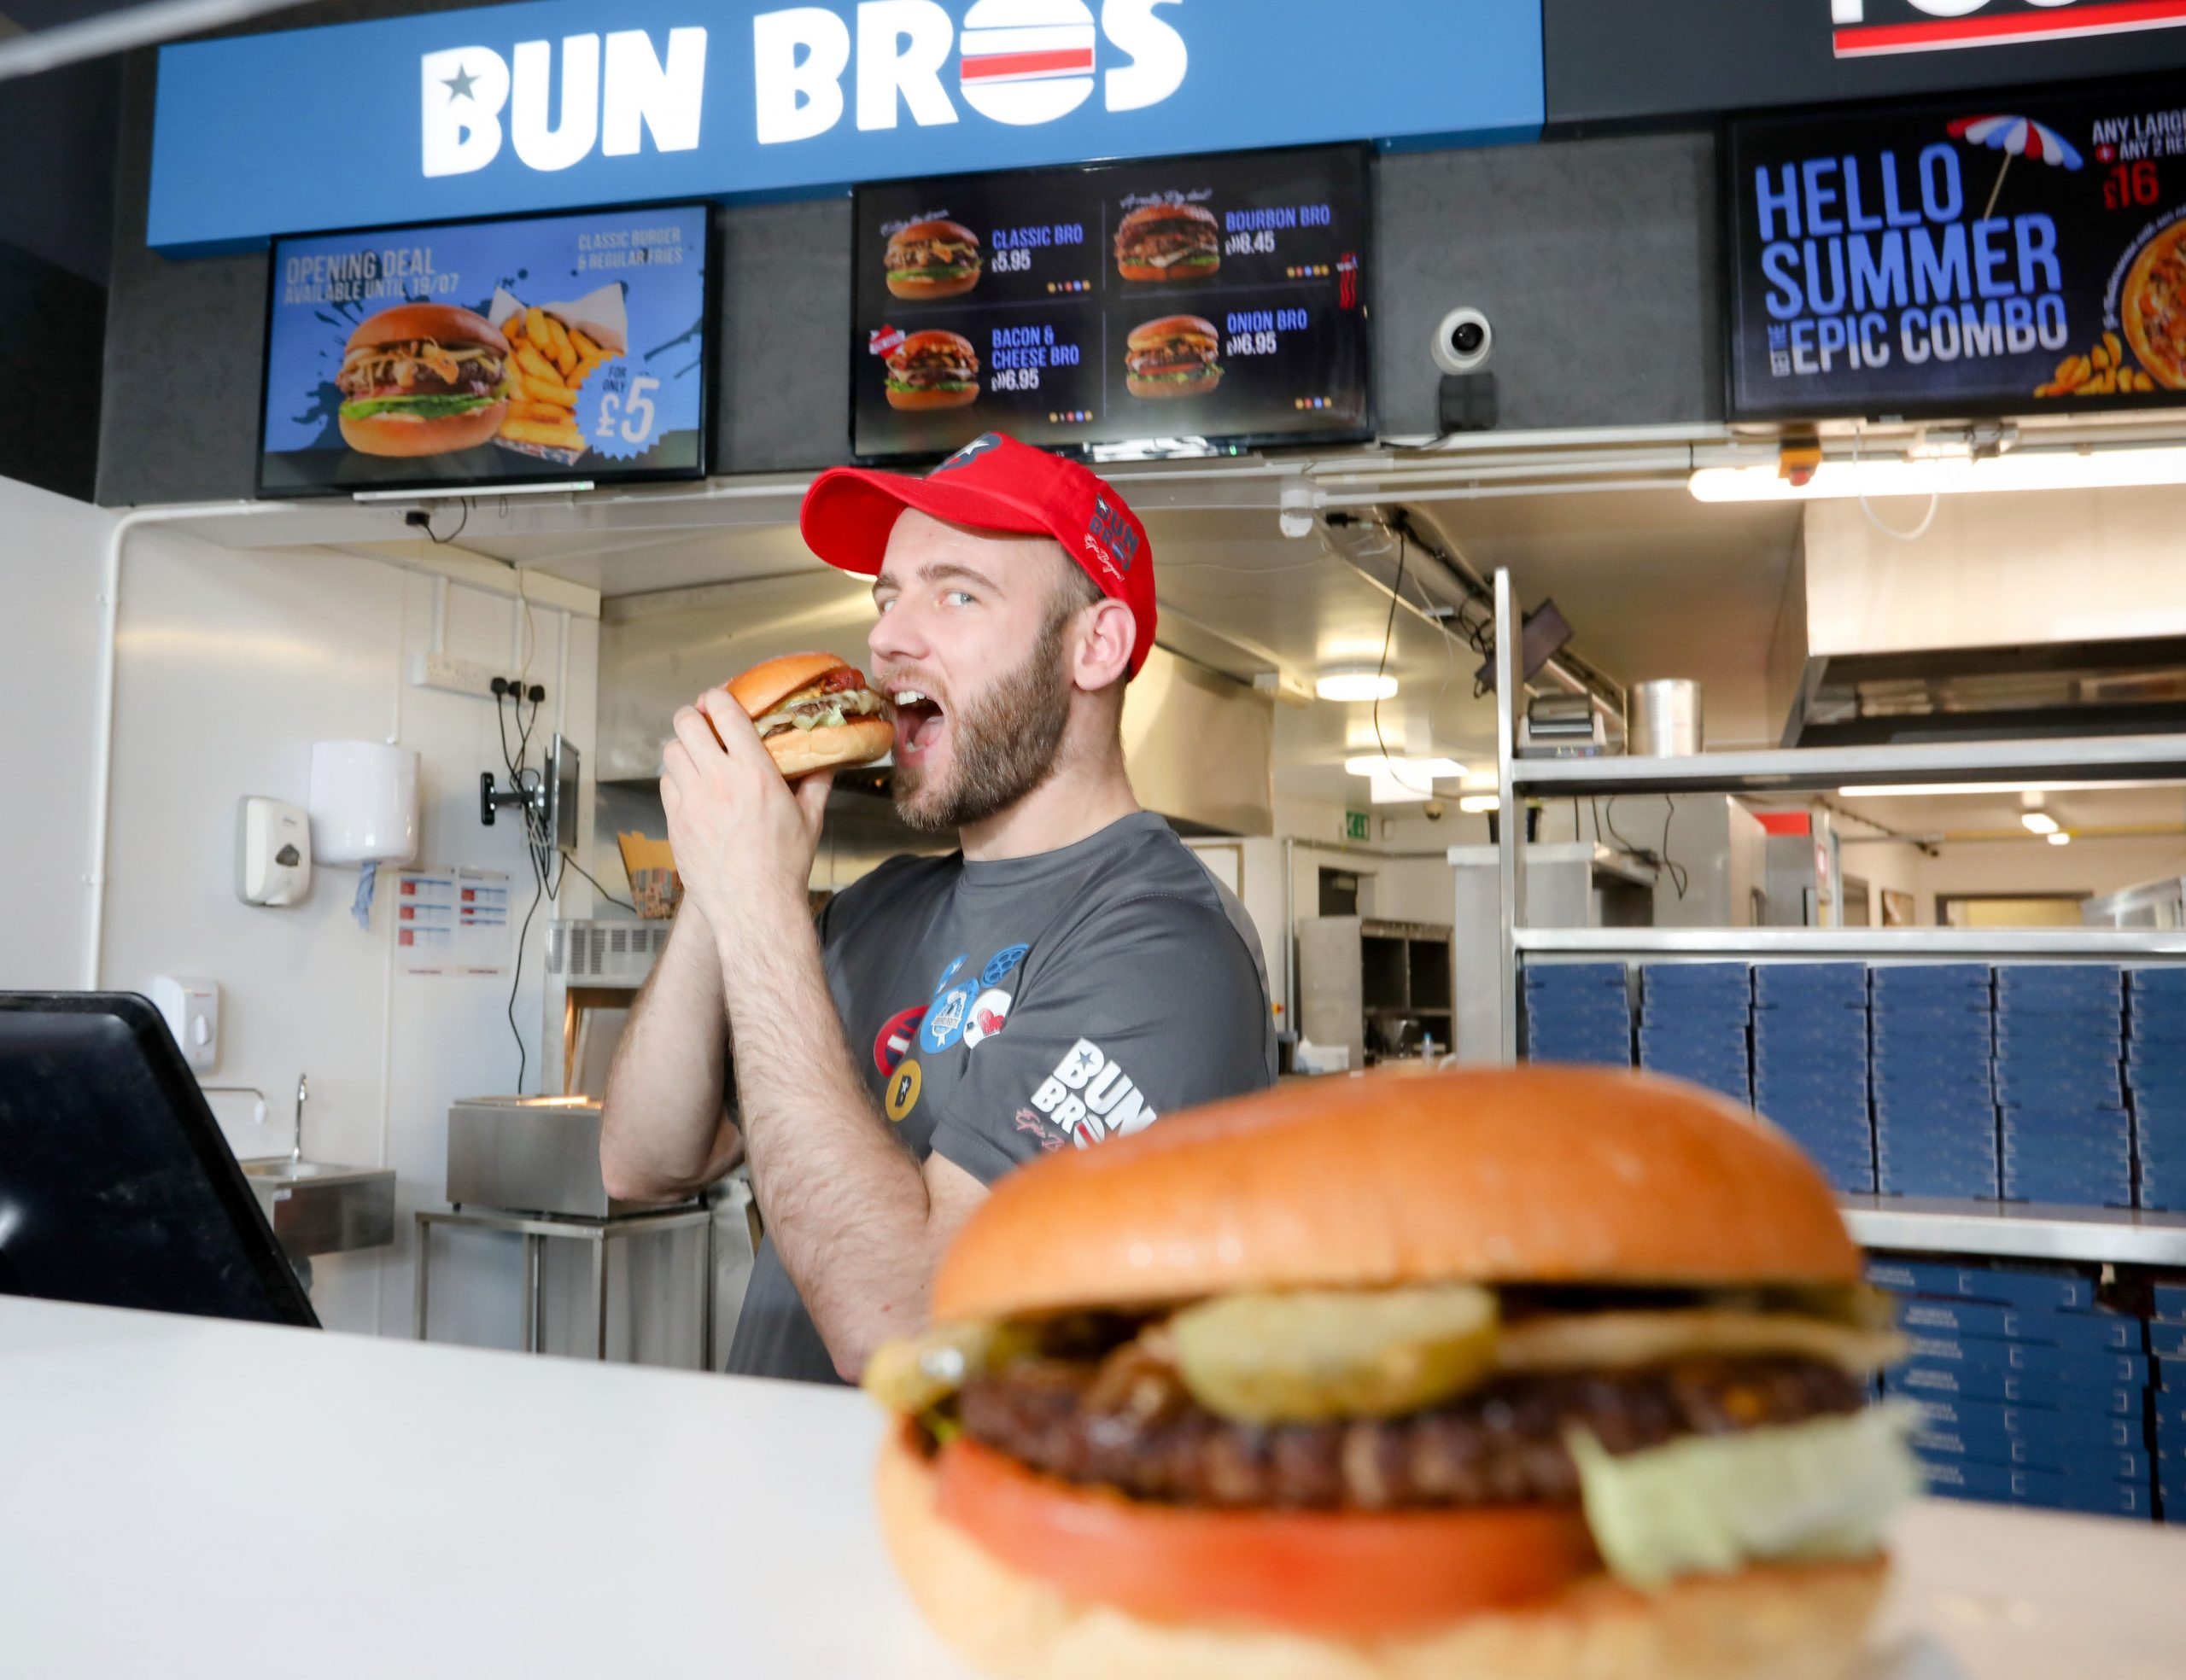 NEW burger chain Bun Bros has opened its first ever store in Northern Ireland, creating 12 new jobs in the Coleraine area after a £50,000 investment. The store will offer burger lovers a vast array of made-to-order burgers produced using only locally sourced Irish Beef. Pictured at the launch is Store Manager Ciaran Magee. For more information on Bun Bros or to order, go to https://bunbros.co.uk or check the company out on social media at https://www.facebook.com/BunBrosColeraine Photo by Philip Magowan / Press Eye